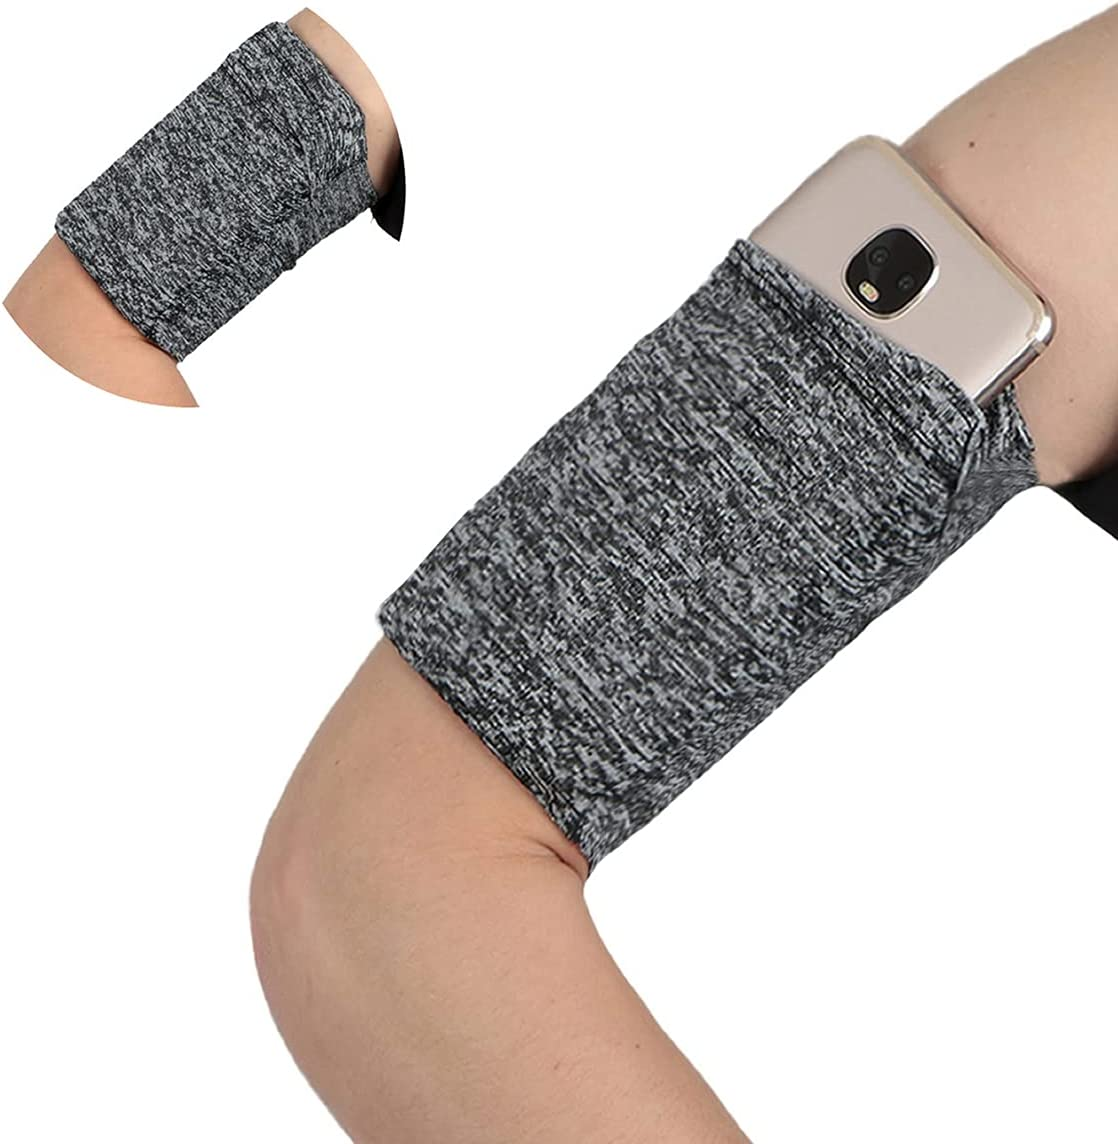 Cell Max 82% OFF Phone Armband for Running Walking B Popular popular Small - Cellphone Wrist